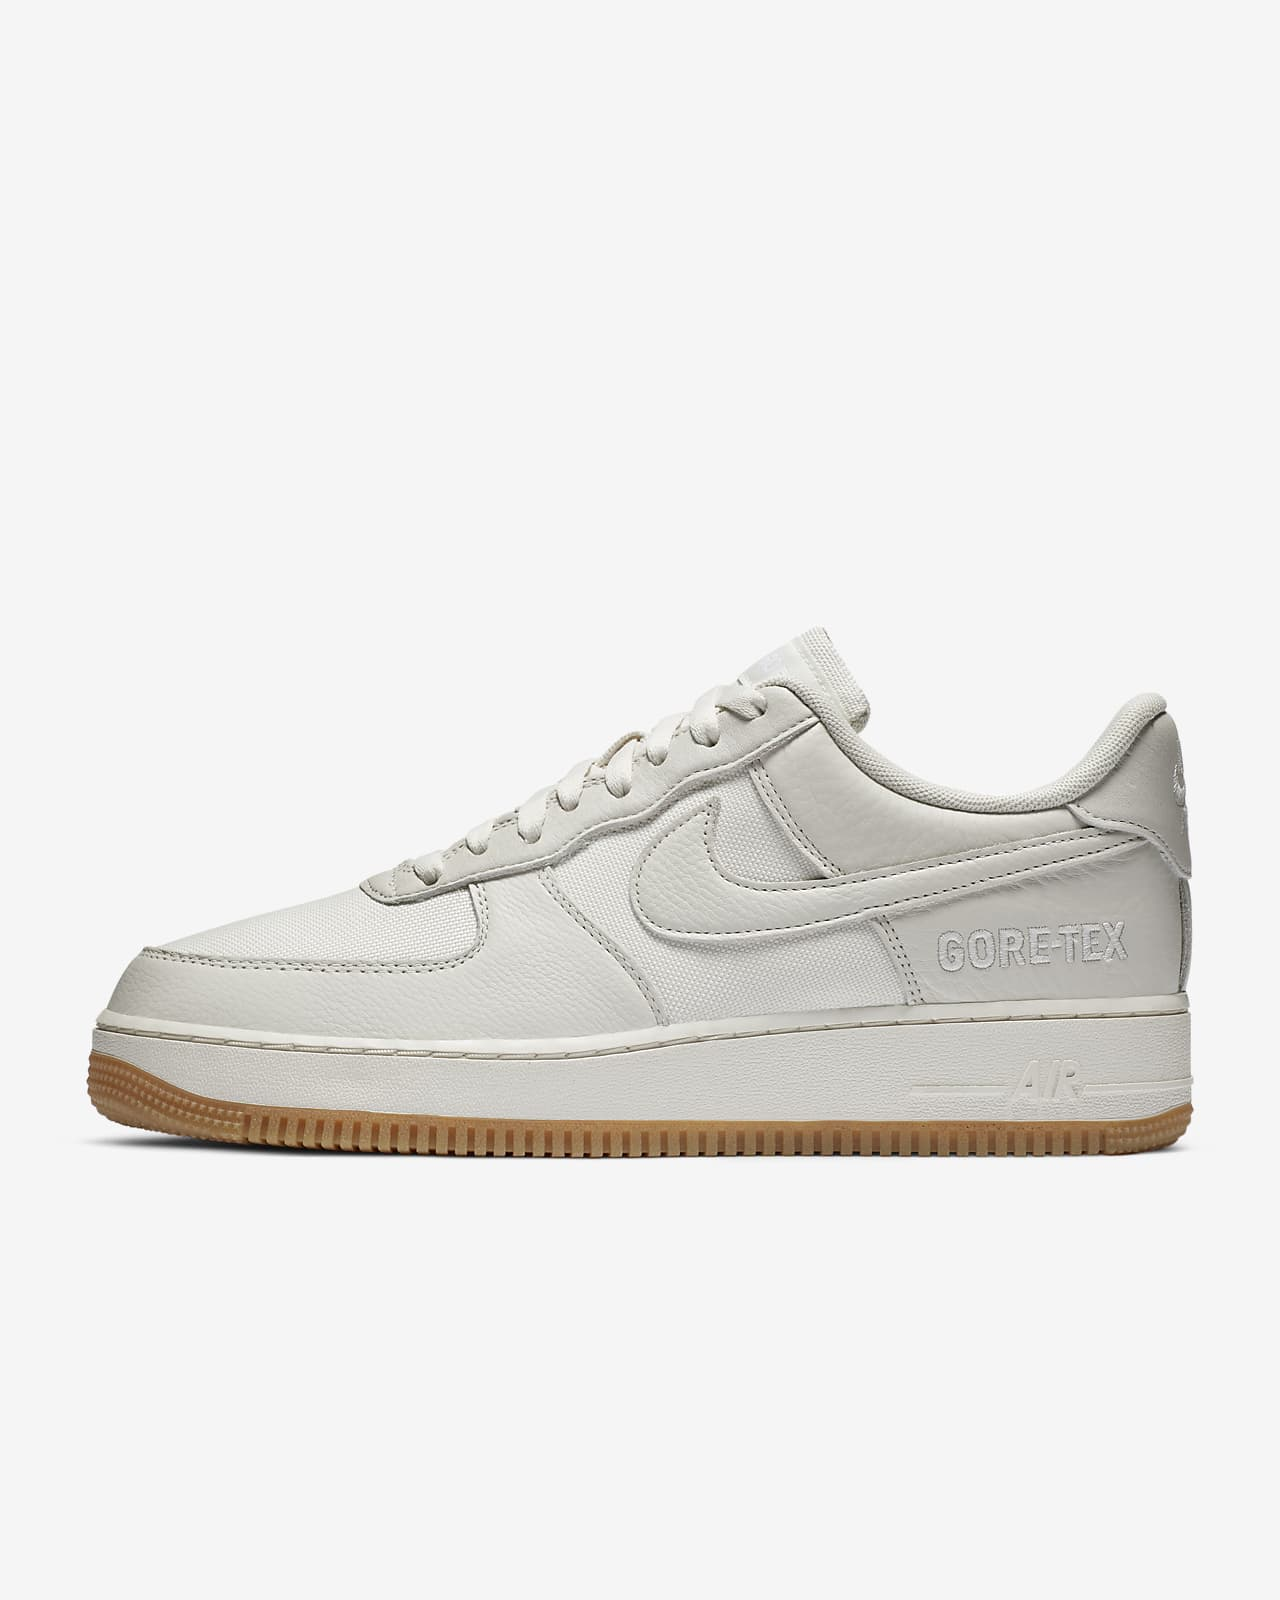 Nike Air Force 1 Low GORE-TEX Erkek Ayakkabısı